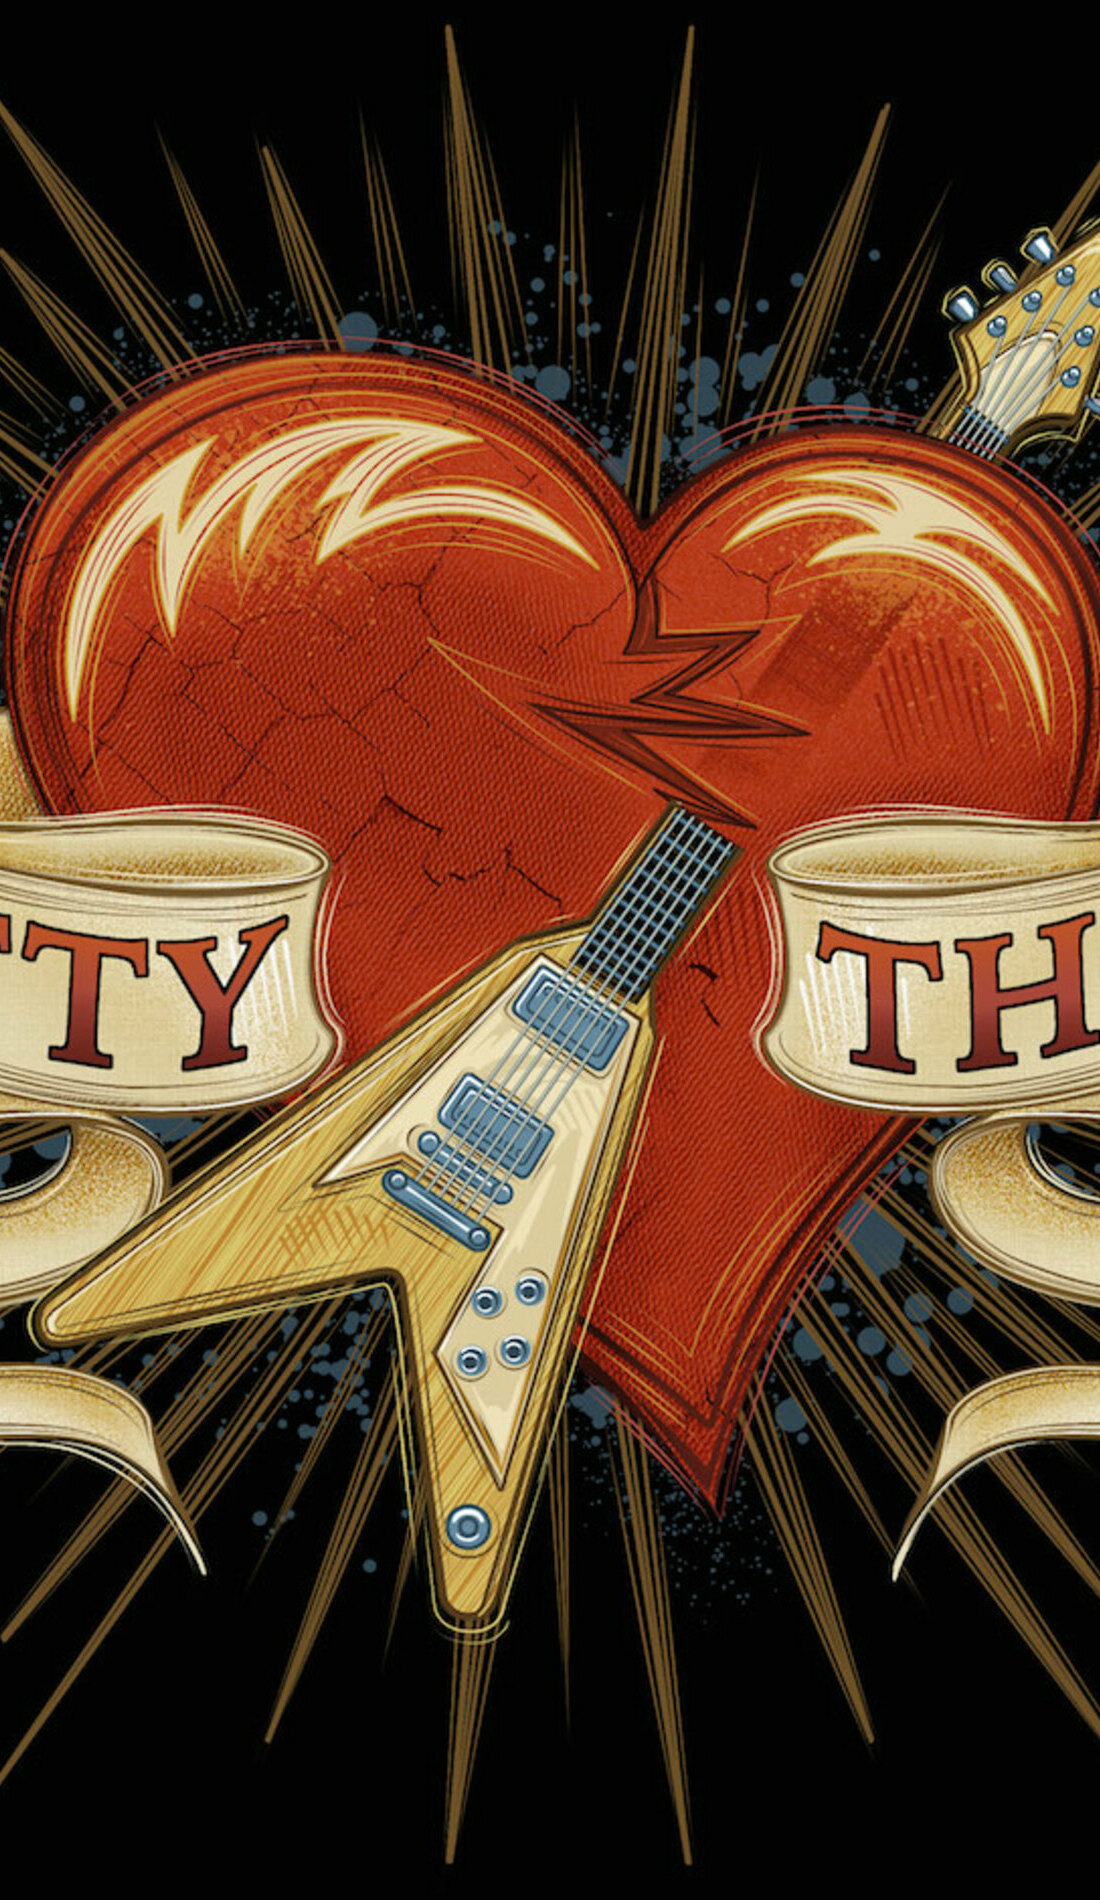 A Petty Theft live event